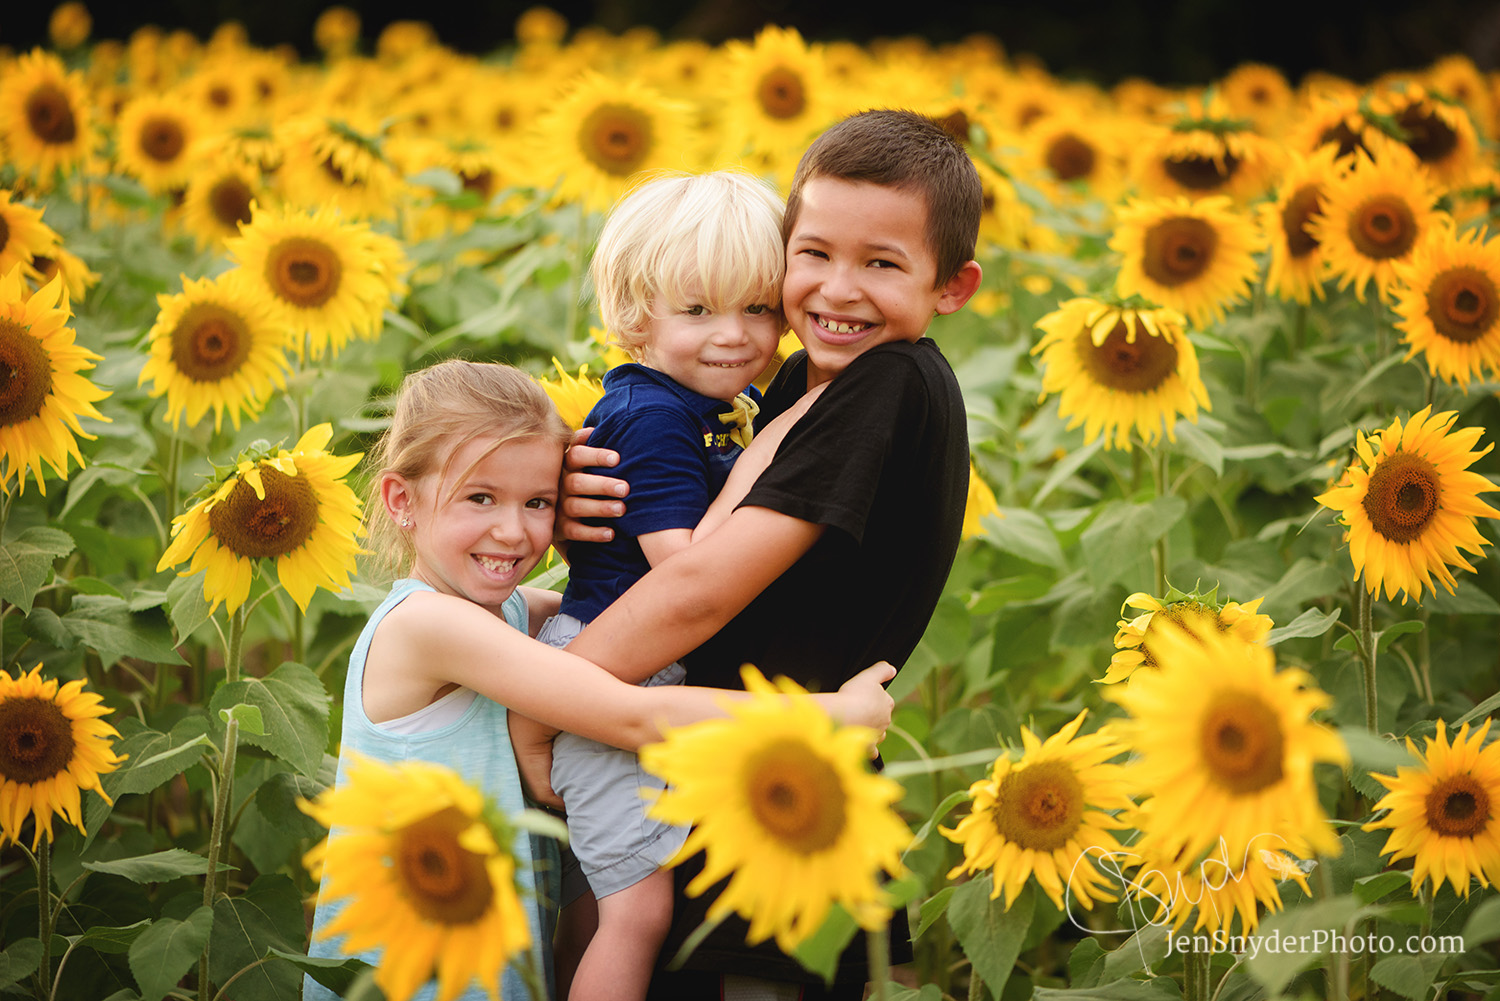 Harford County, Maryland sunflower portrait children's photographer Jen Snyder http://www.jensnyderphoto.com